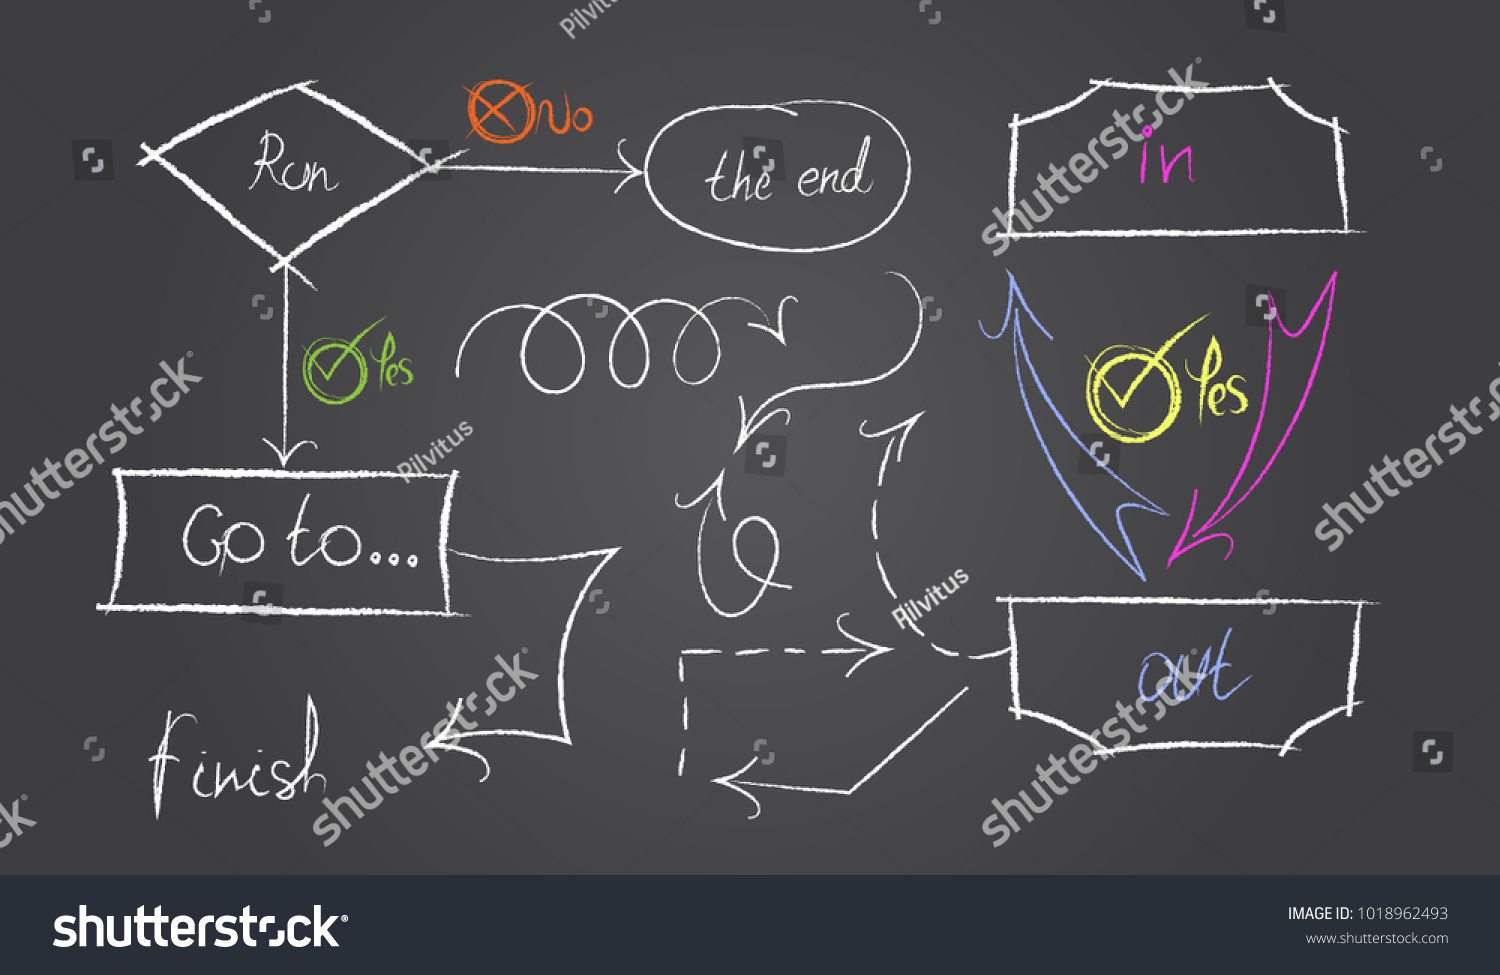 Workflow diagram working algorithm hand drawn stock vector workflow diagram working algorithm hand drawn elements divider wavy and dotted lines geenschuldenfo Gallery